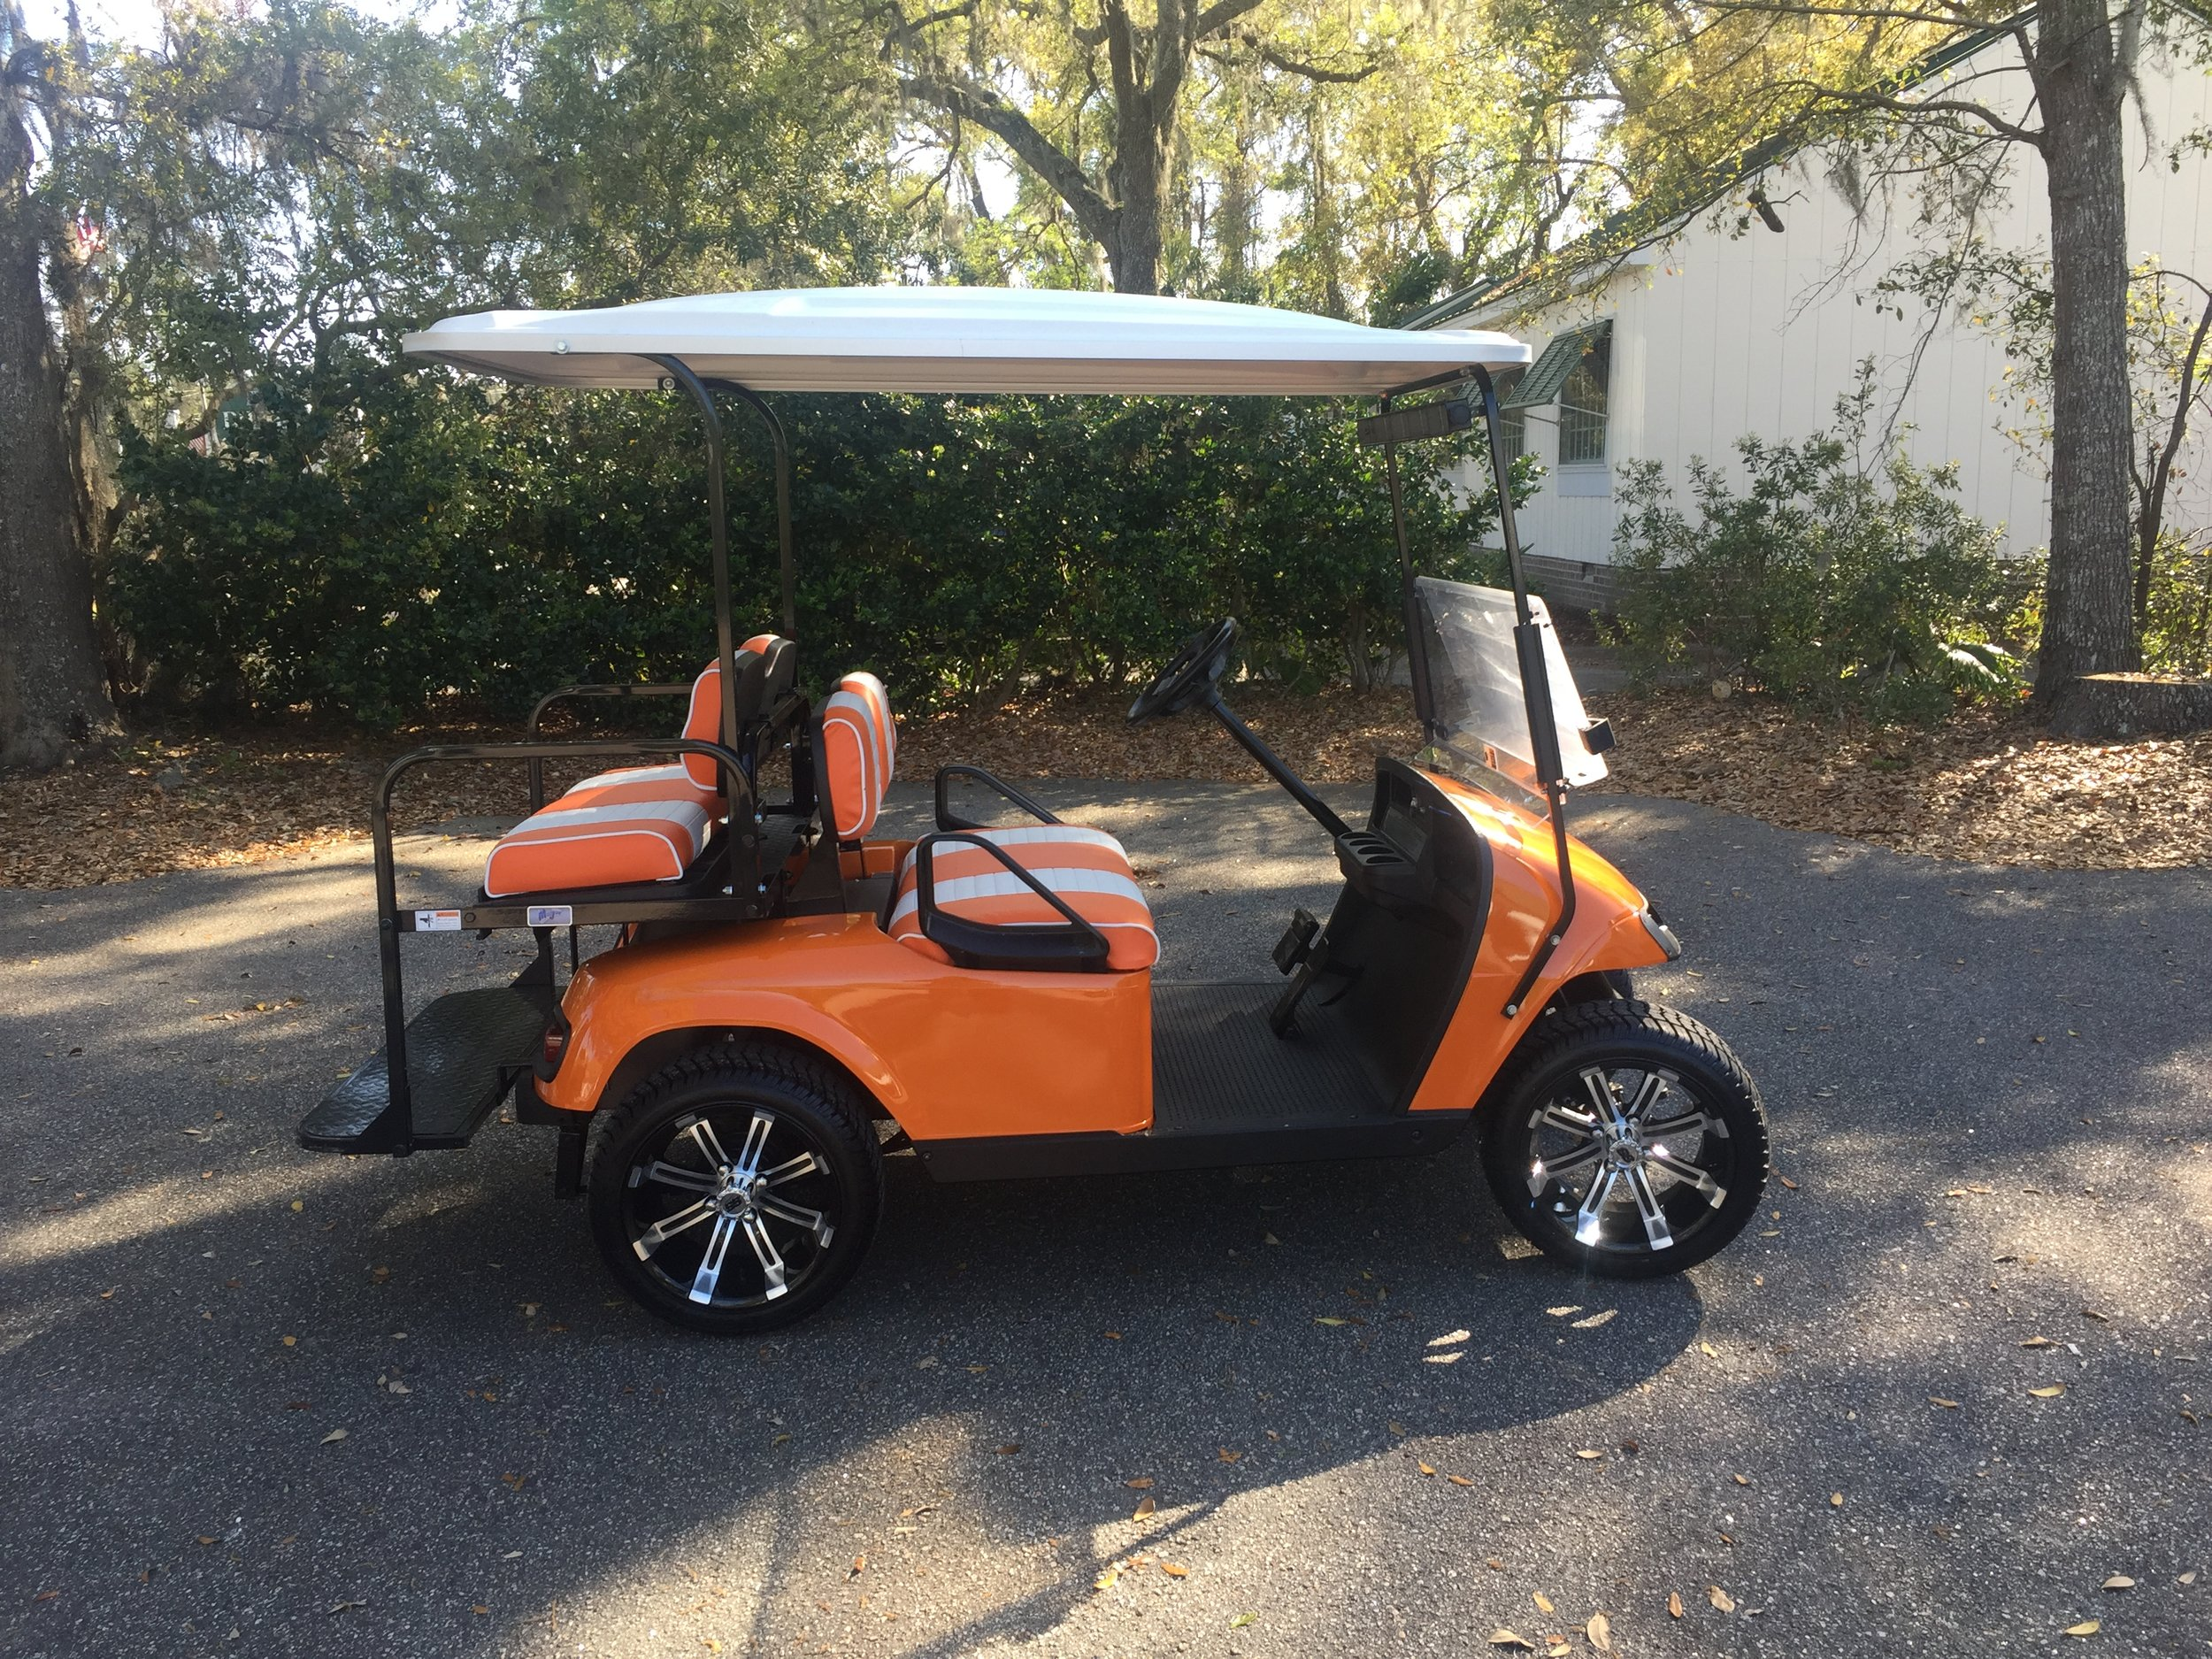 2015 Orange EZGO Cart —————  Orange/white seats, white extended top, new 2019 batteries 48vt (6-8), high speed code, LED lights, Lo Pro tires, mirror & flip windshield